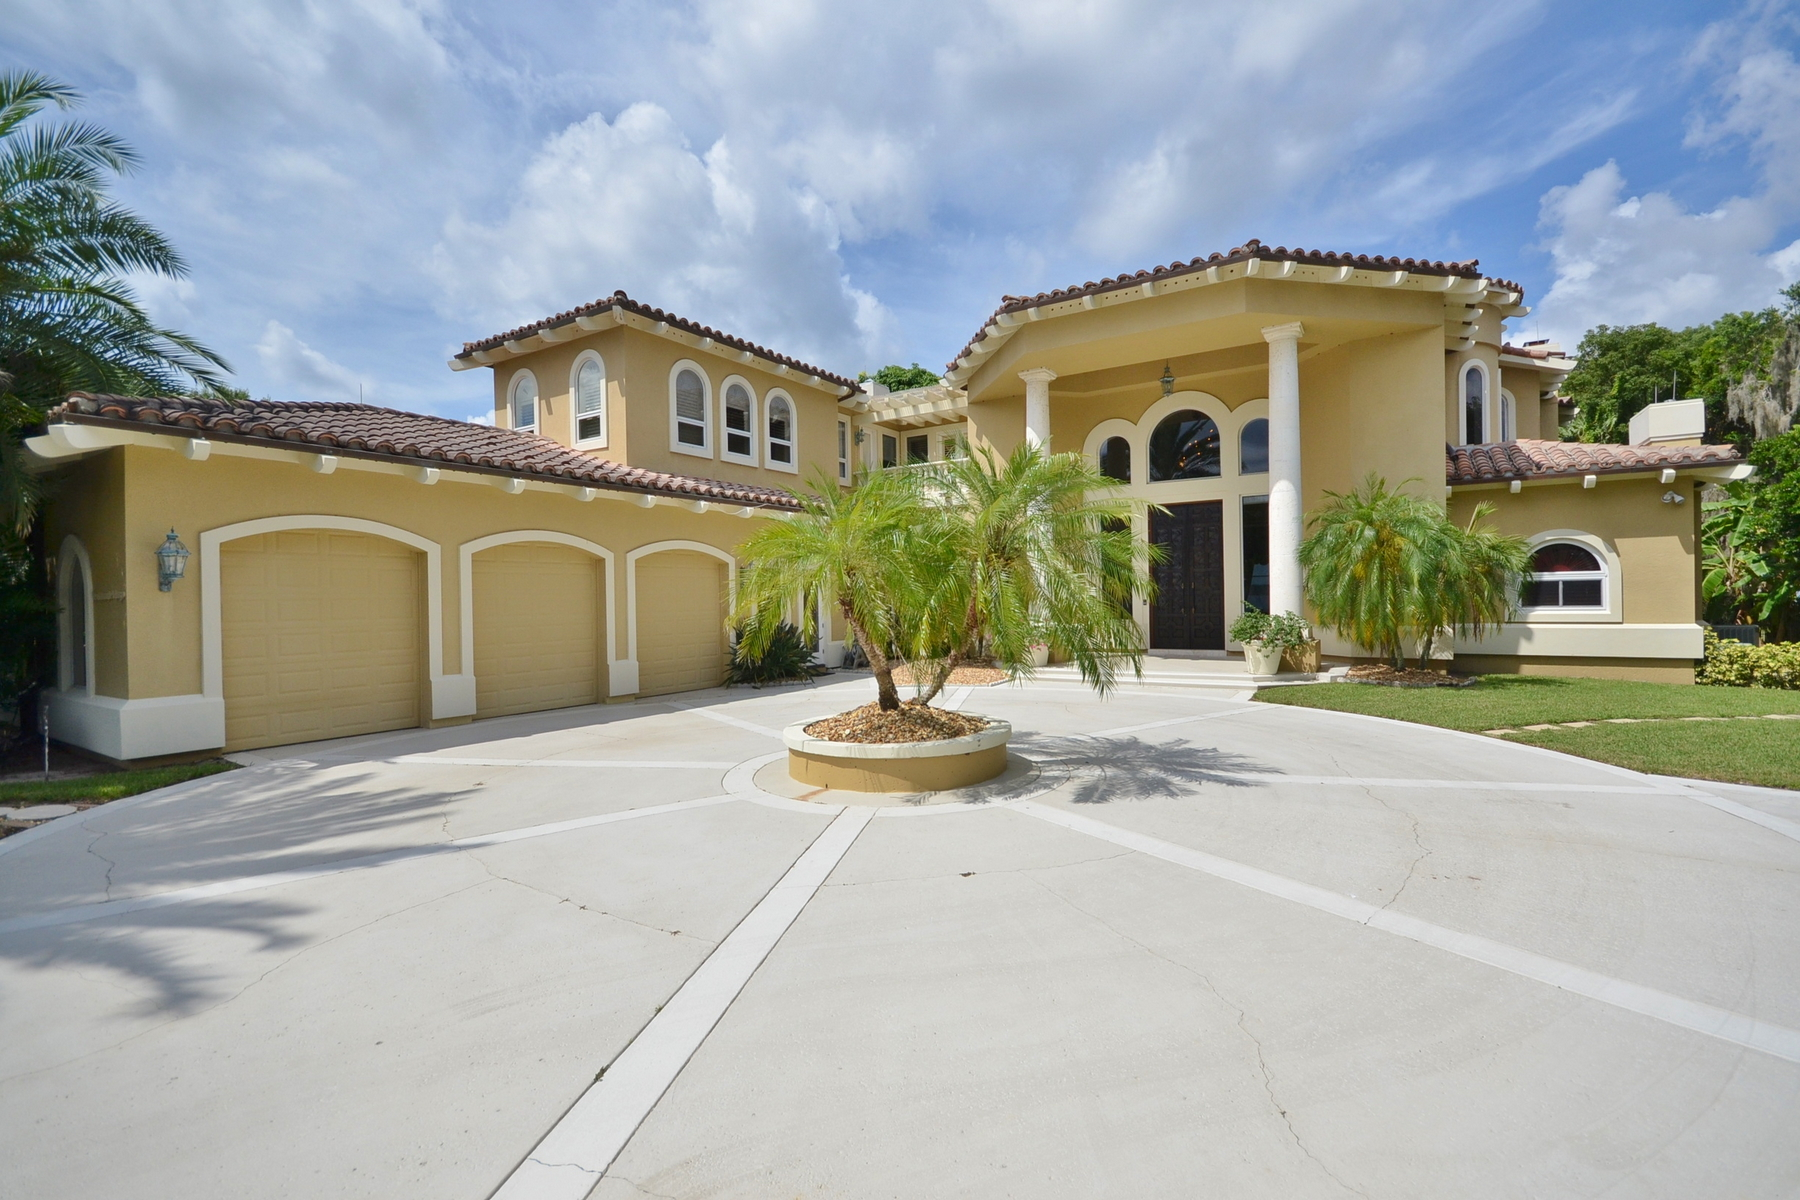 Single Family Home for Sale at Orlando, Florida 9202 Bay Point Orlando, Florida 32812 United States